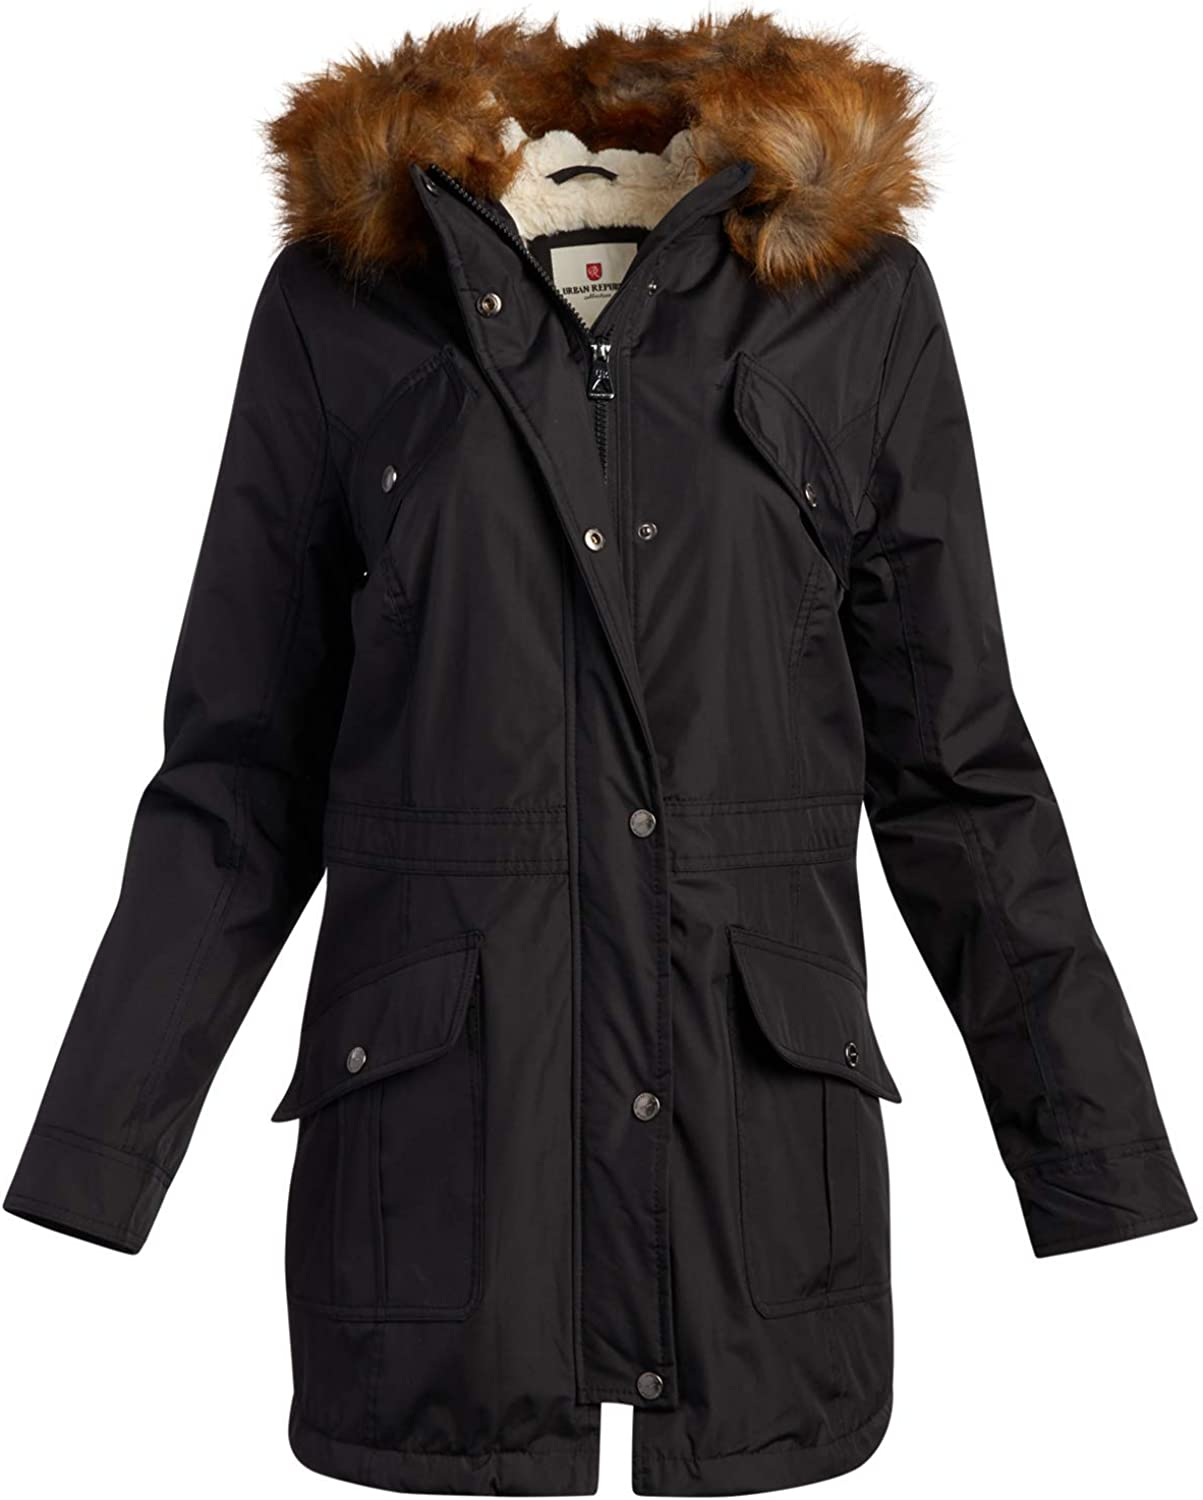 URBAN REPUBLIC Women's Winter Jacket - Heavyweight Water Resistant Expedition Faux-Fur Lined Parka Jacket